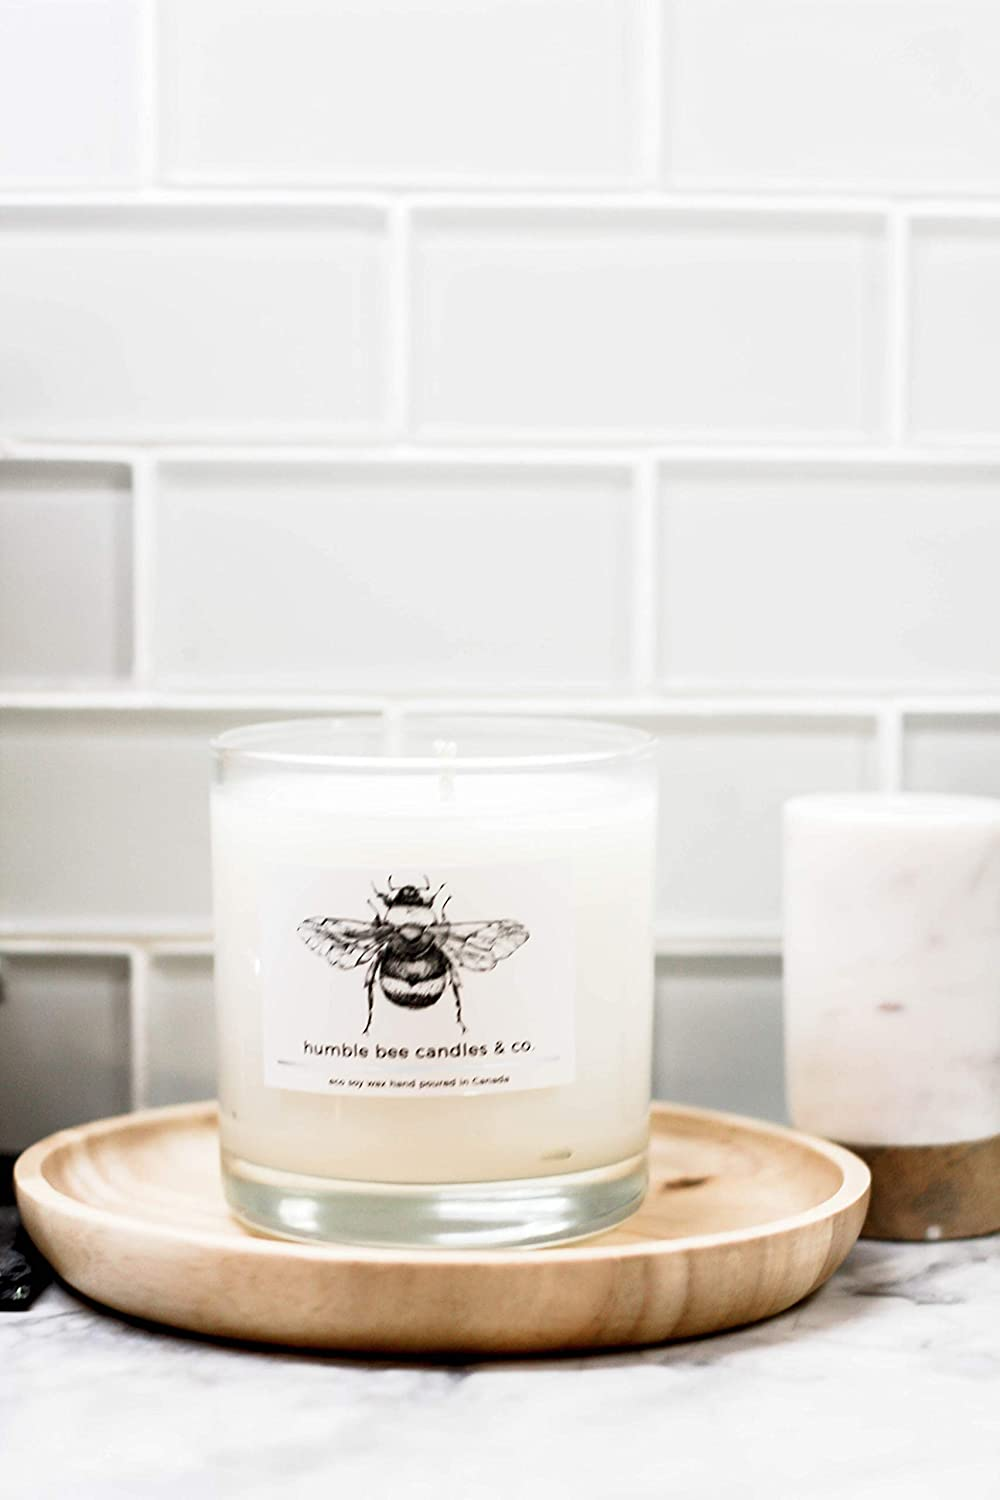 Humble Bee Soy & Coconut Wax Signature Candle - EAGLE WOOD (baby powder scent)